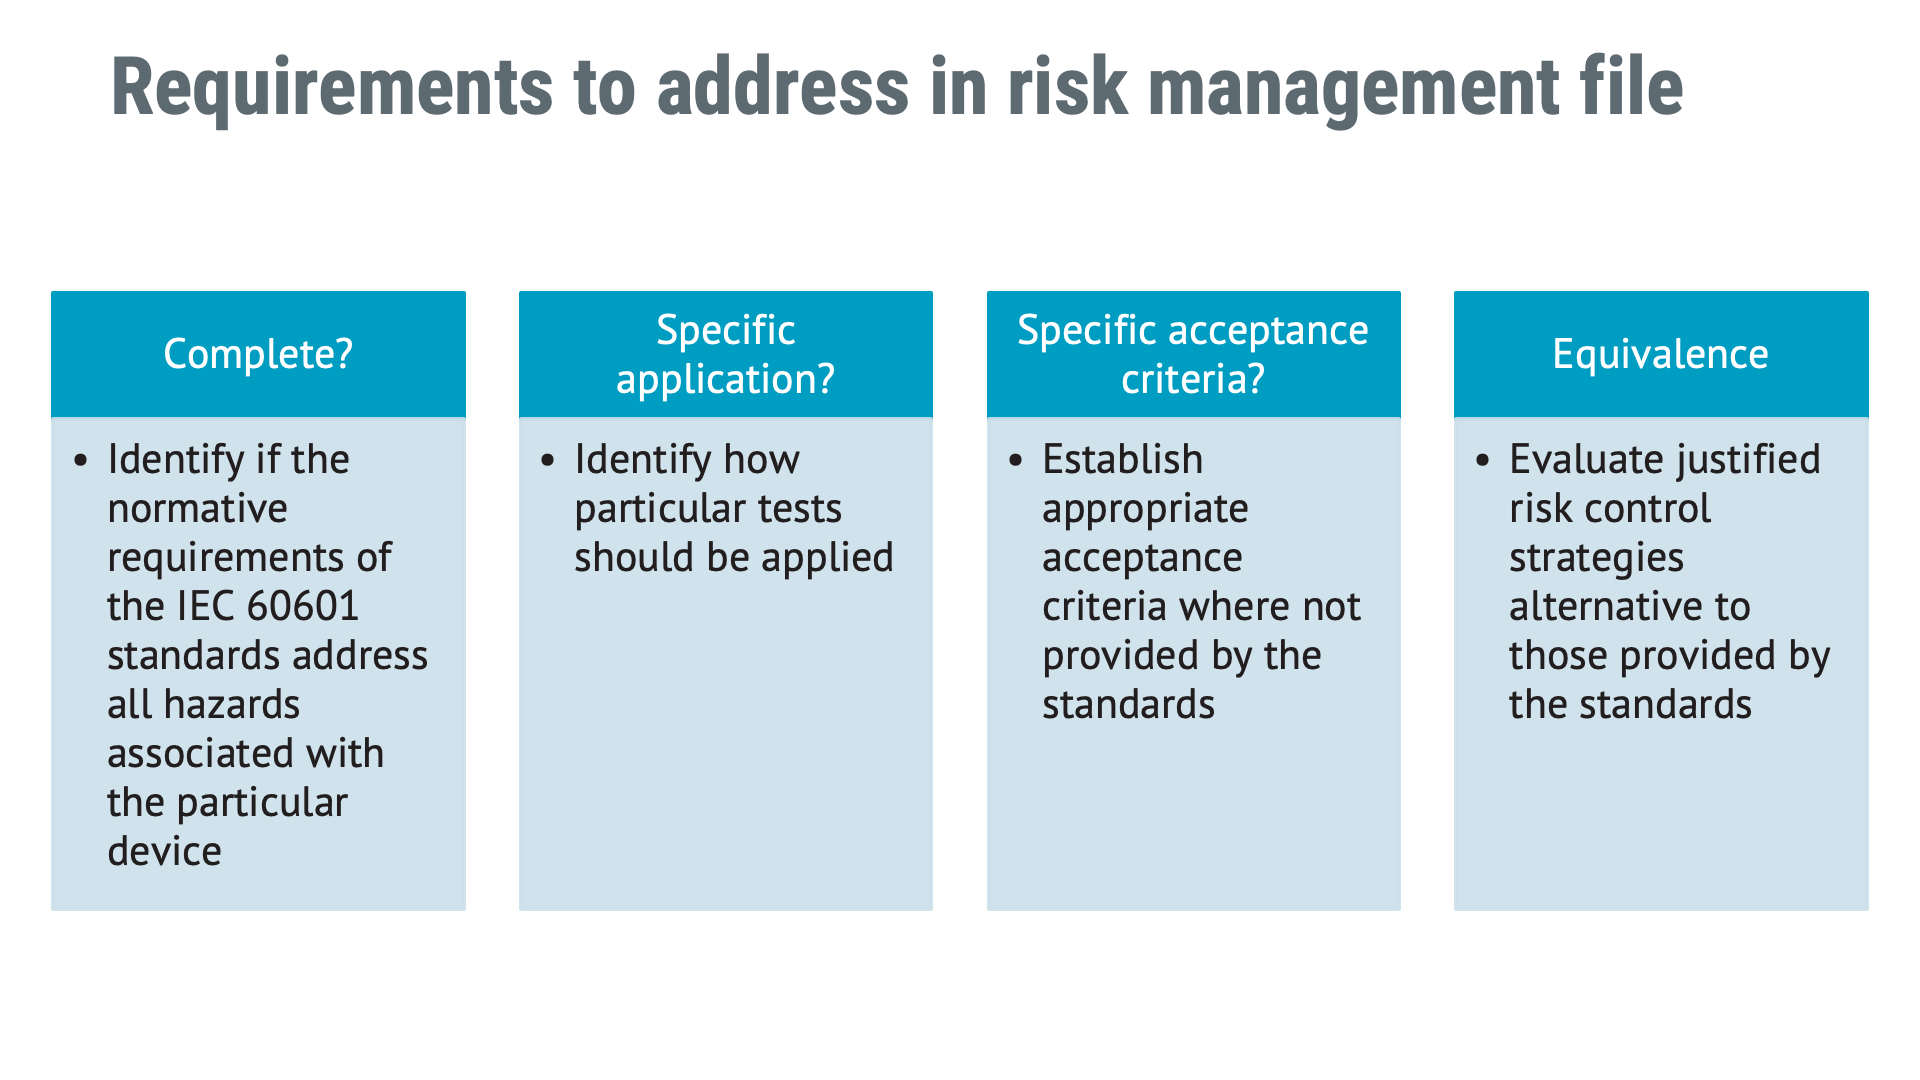 Requirements to address in risk management